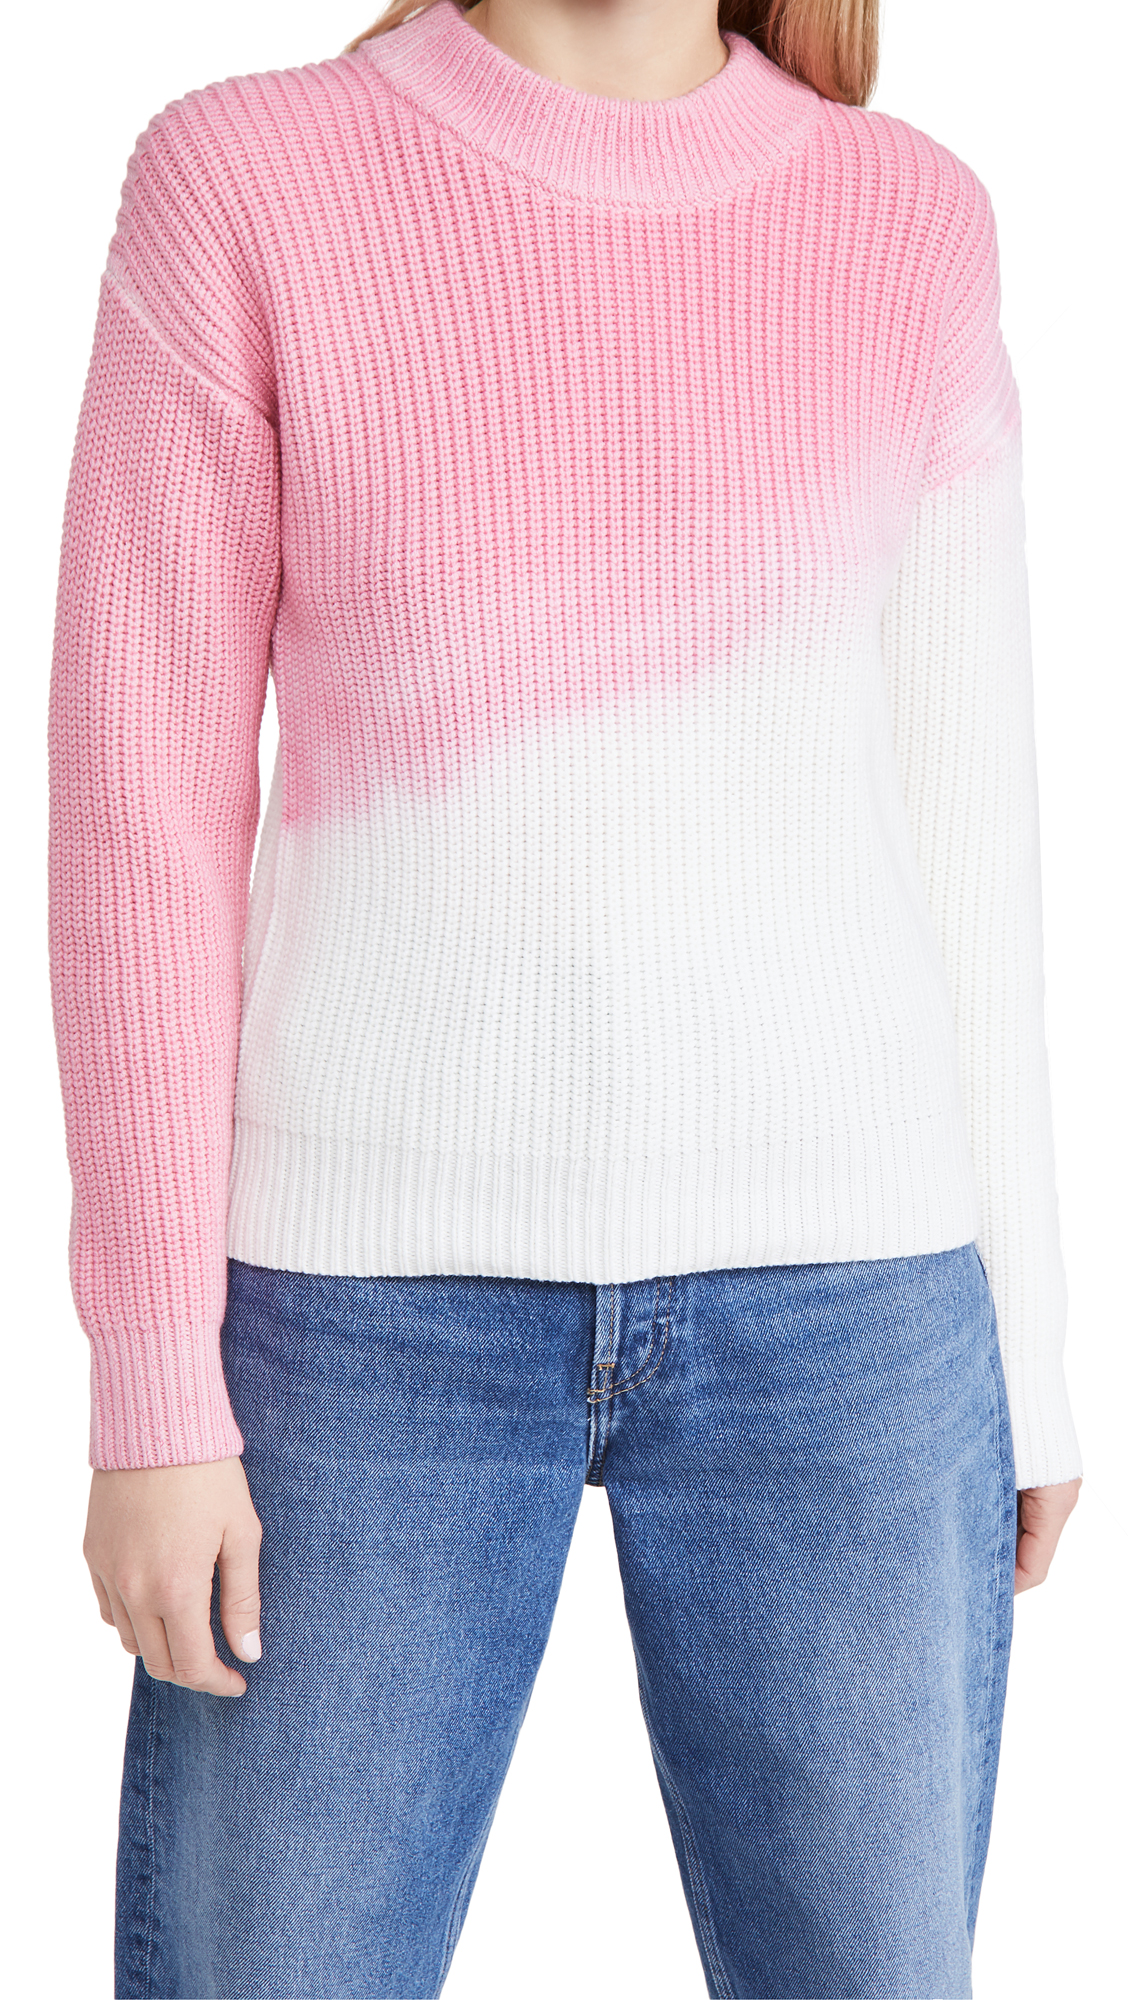 VEDA Ranch Road Tie Dye Sweater